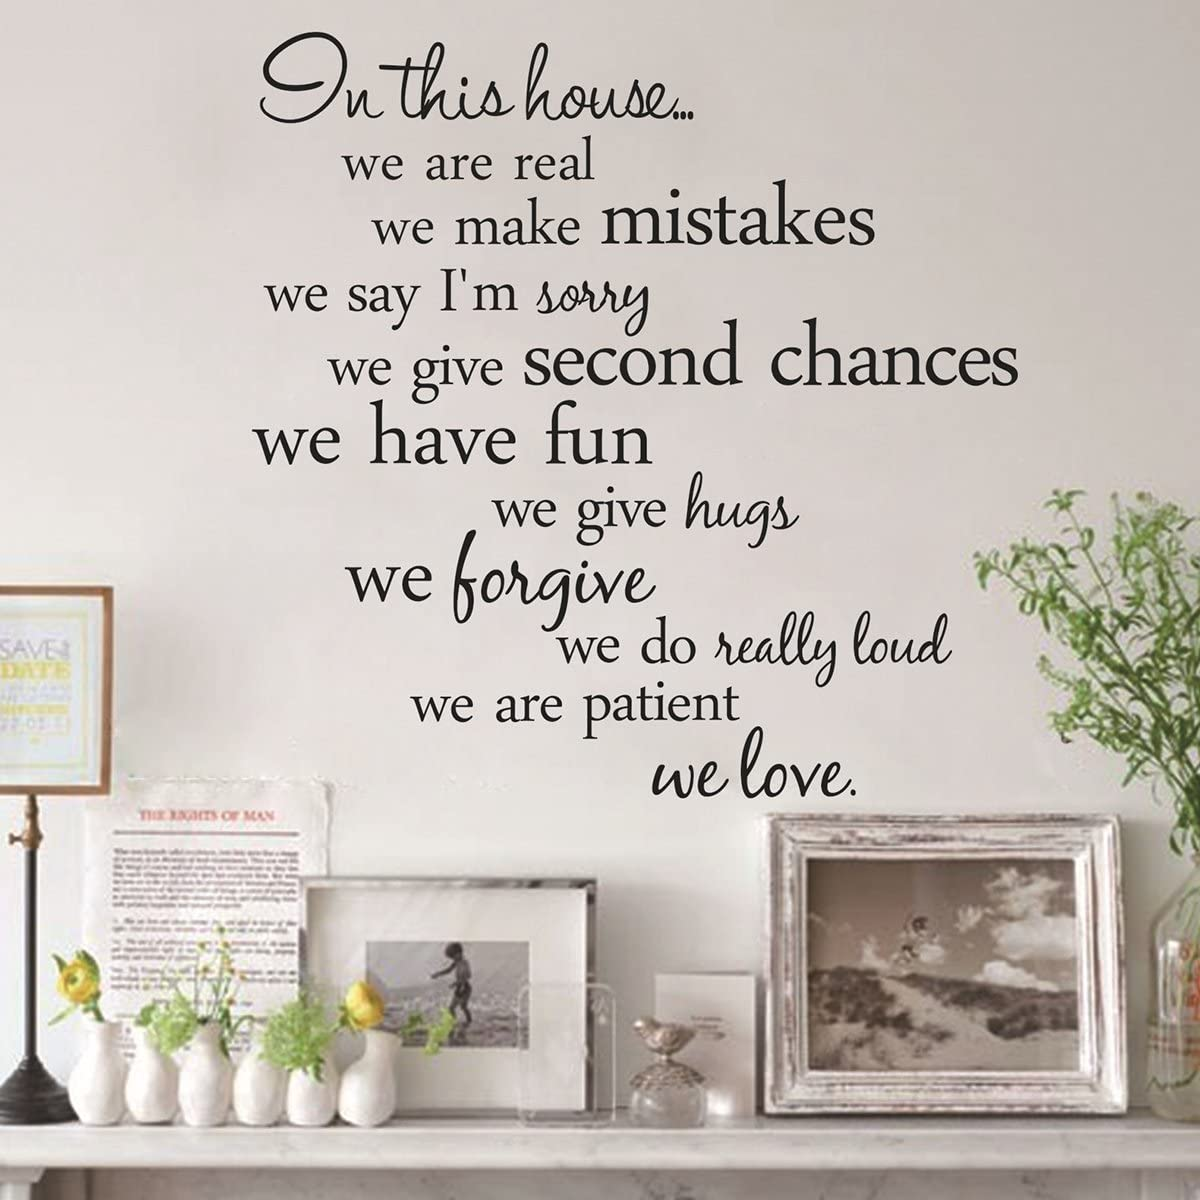 PIXNOR Novelty In This House Home Rules DIY Removable Wall Quote Sticker for Room Decor